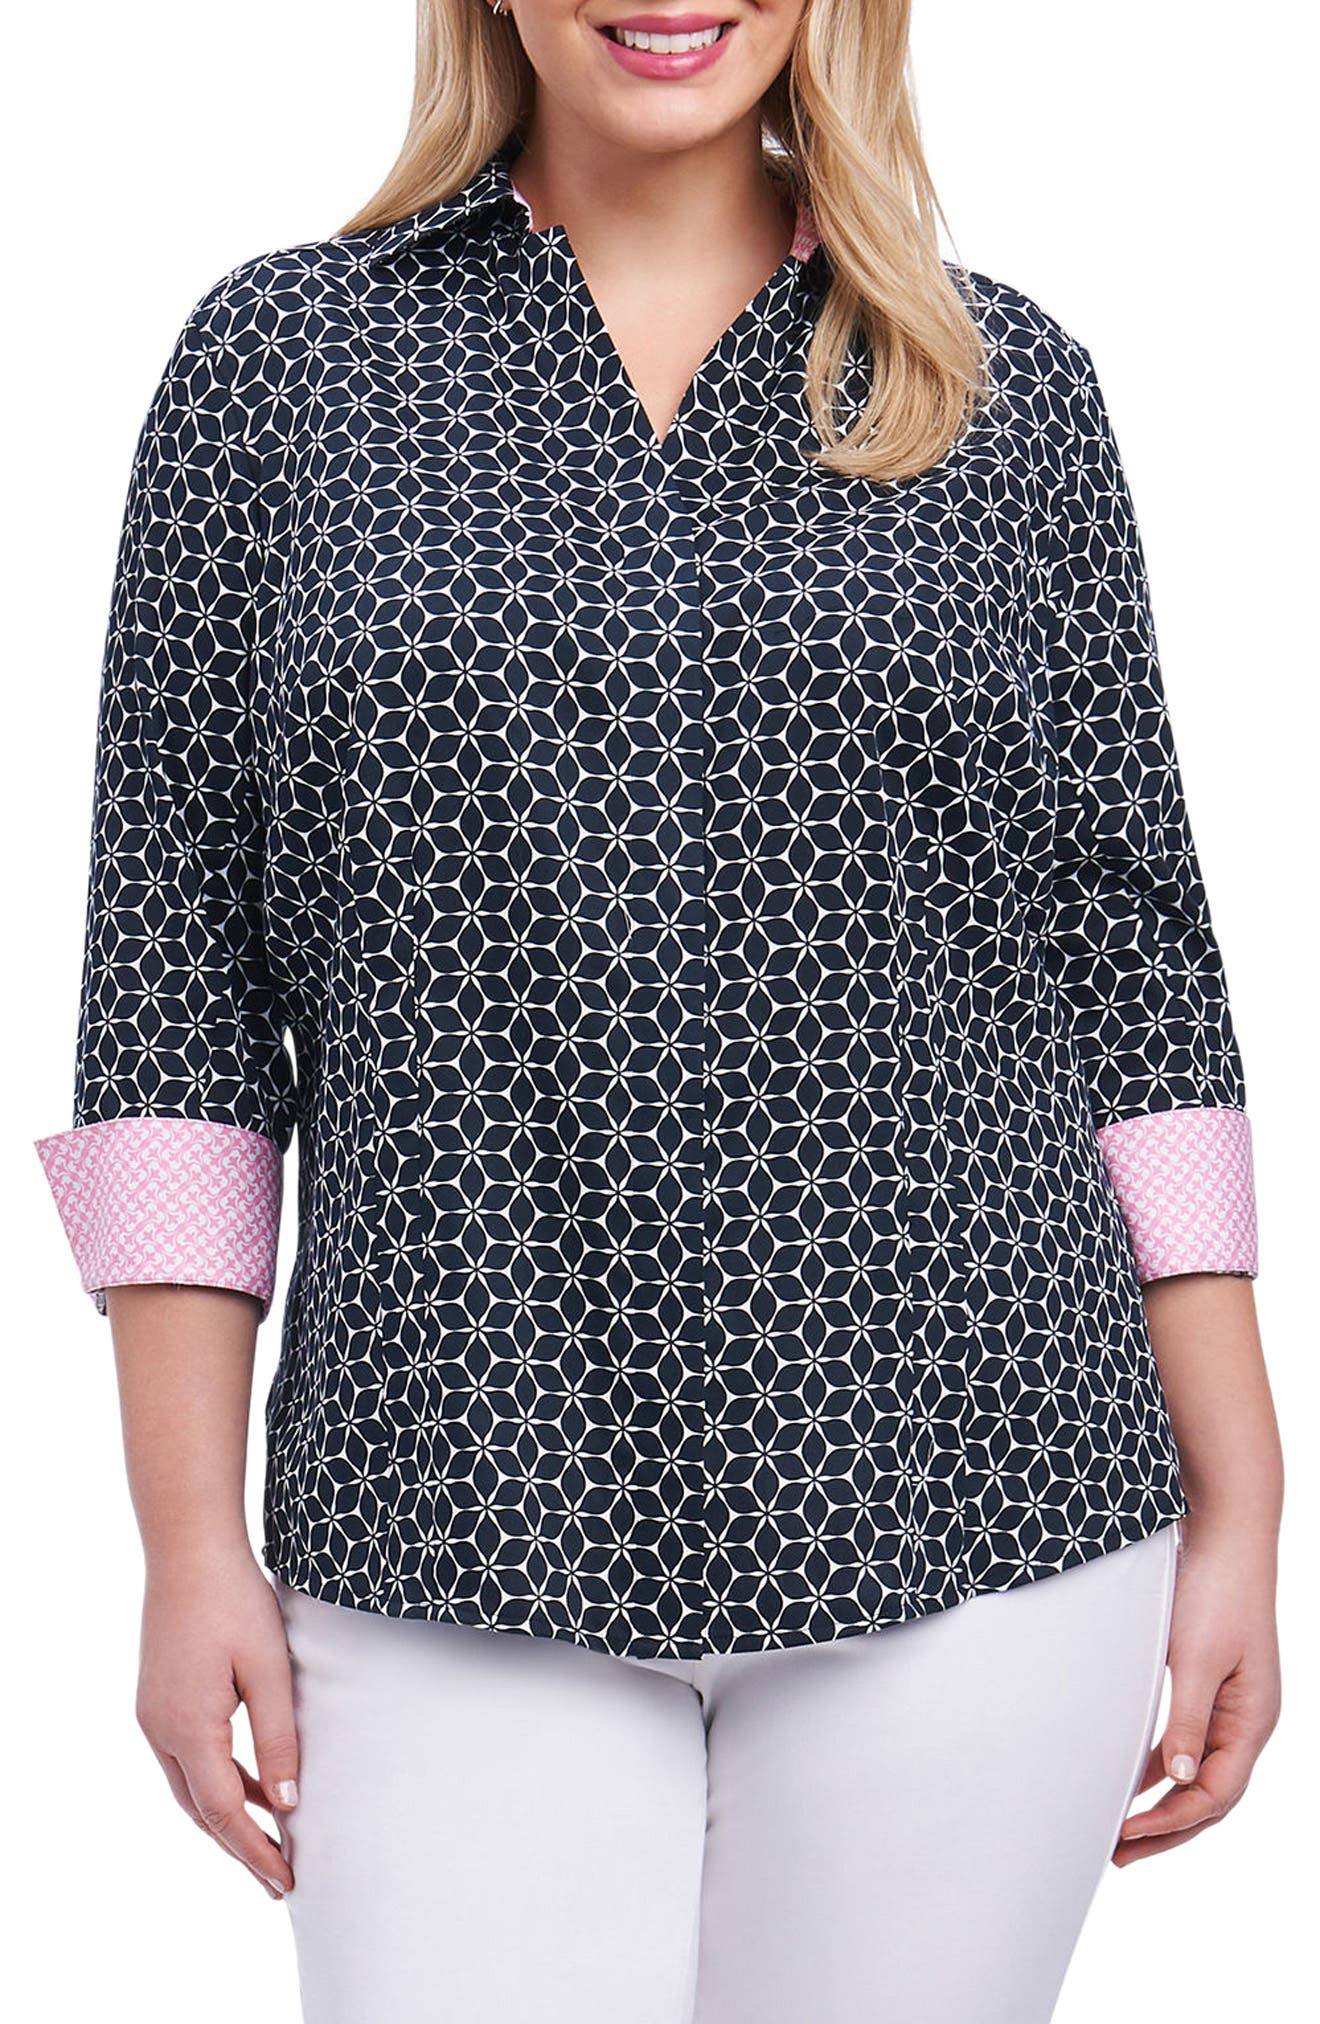 Alternate Image 1 Selected - Foxcroft Taylor Optic Floral Print Shirt (Plus Size)